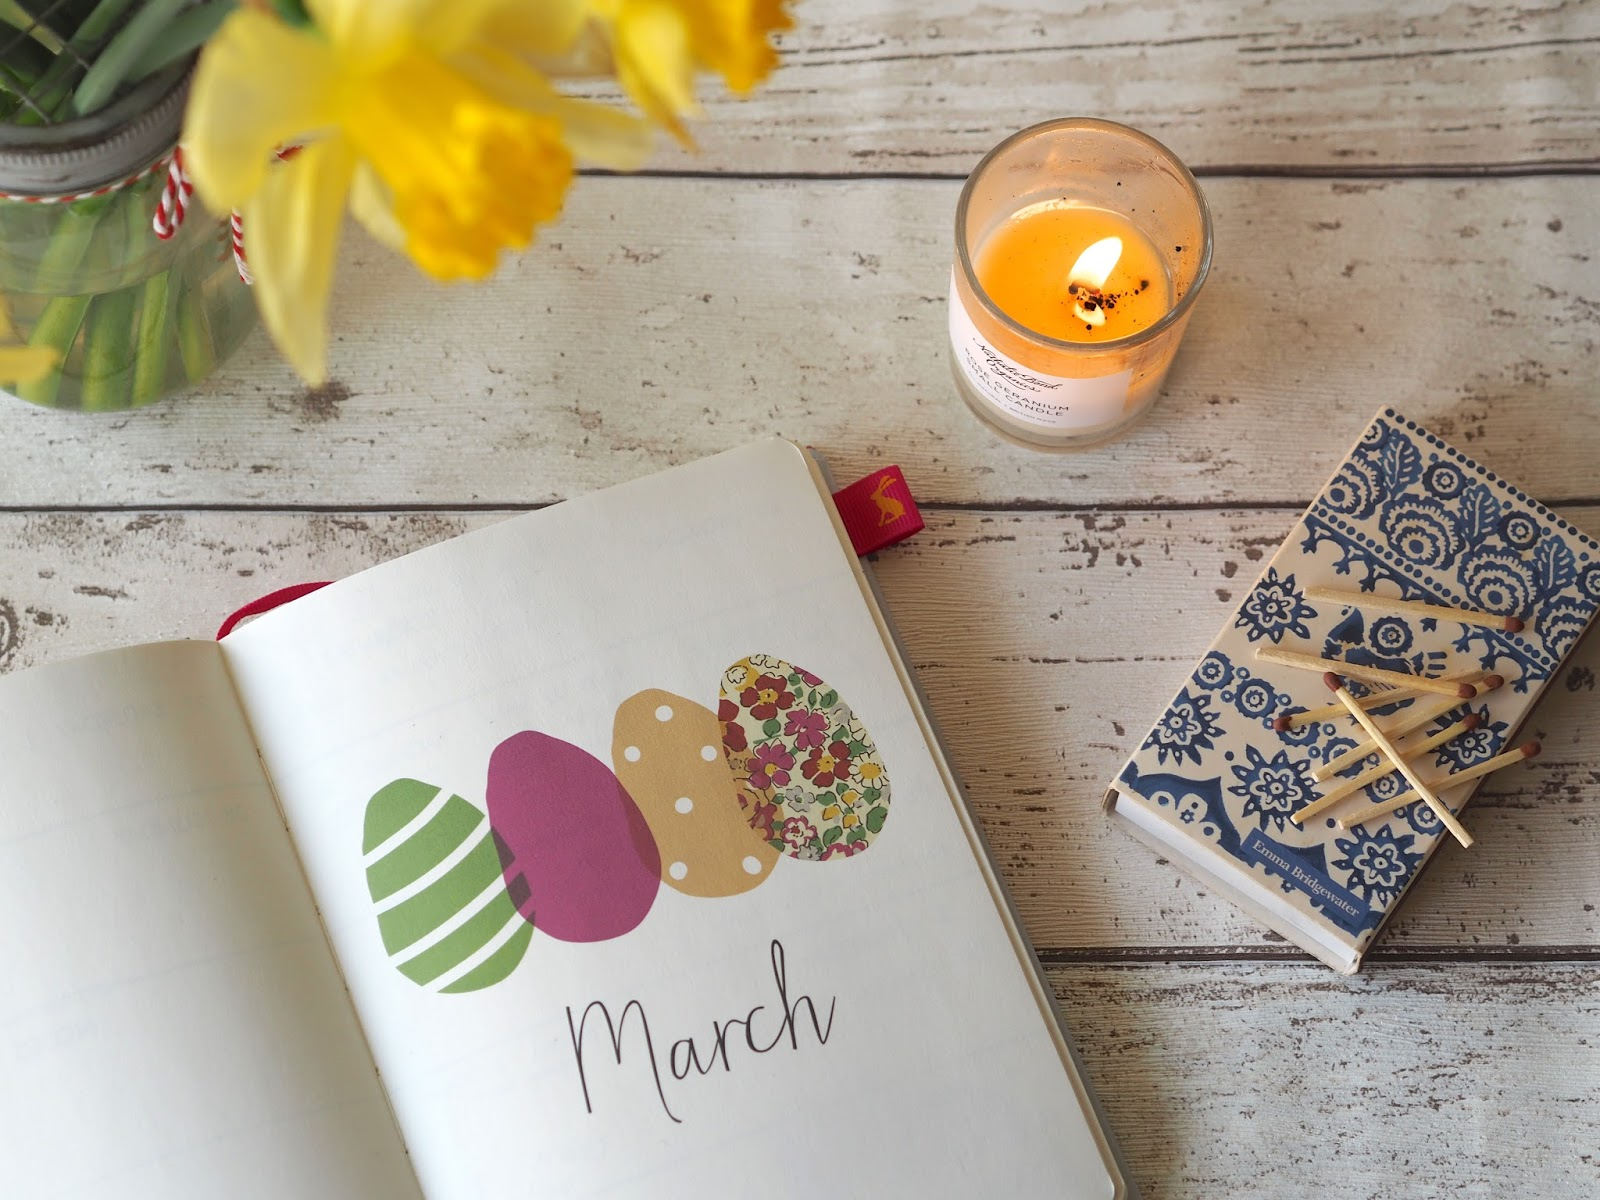 March Diary, Flowers & Candle